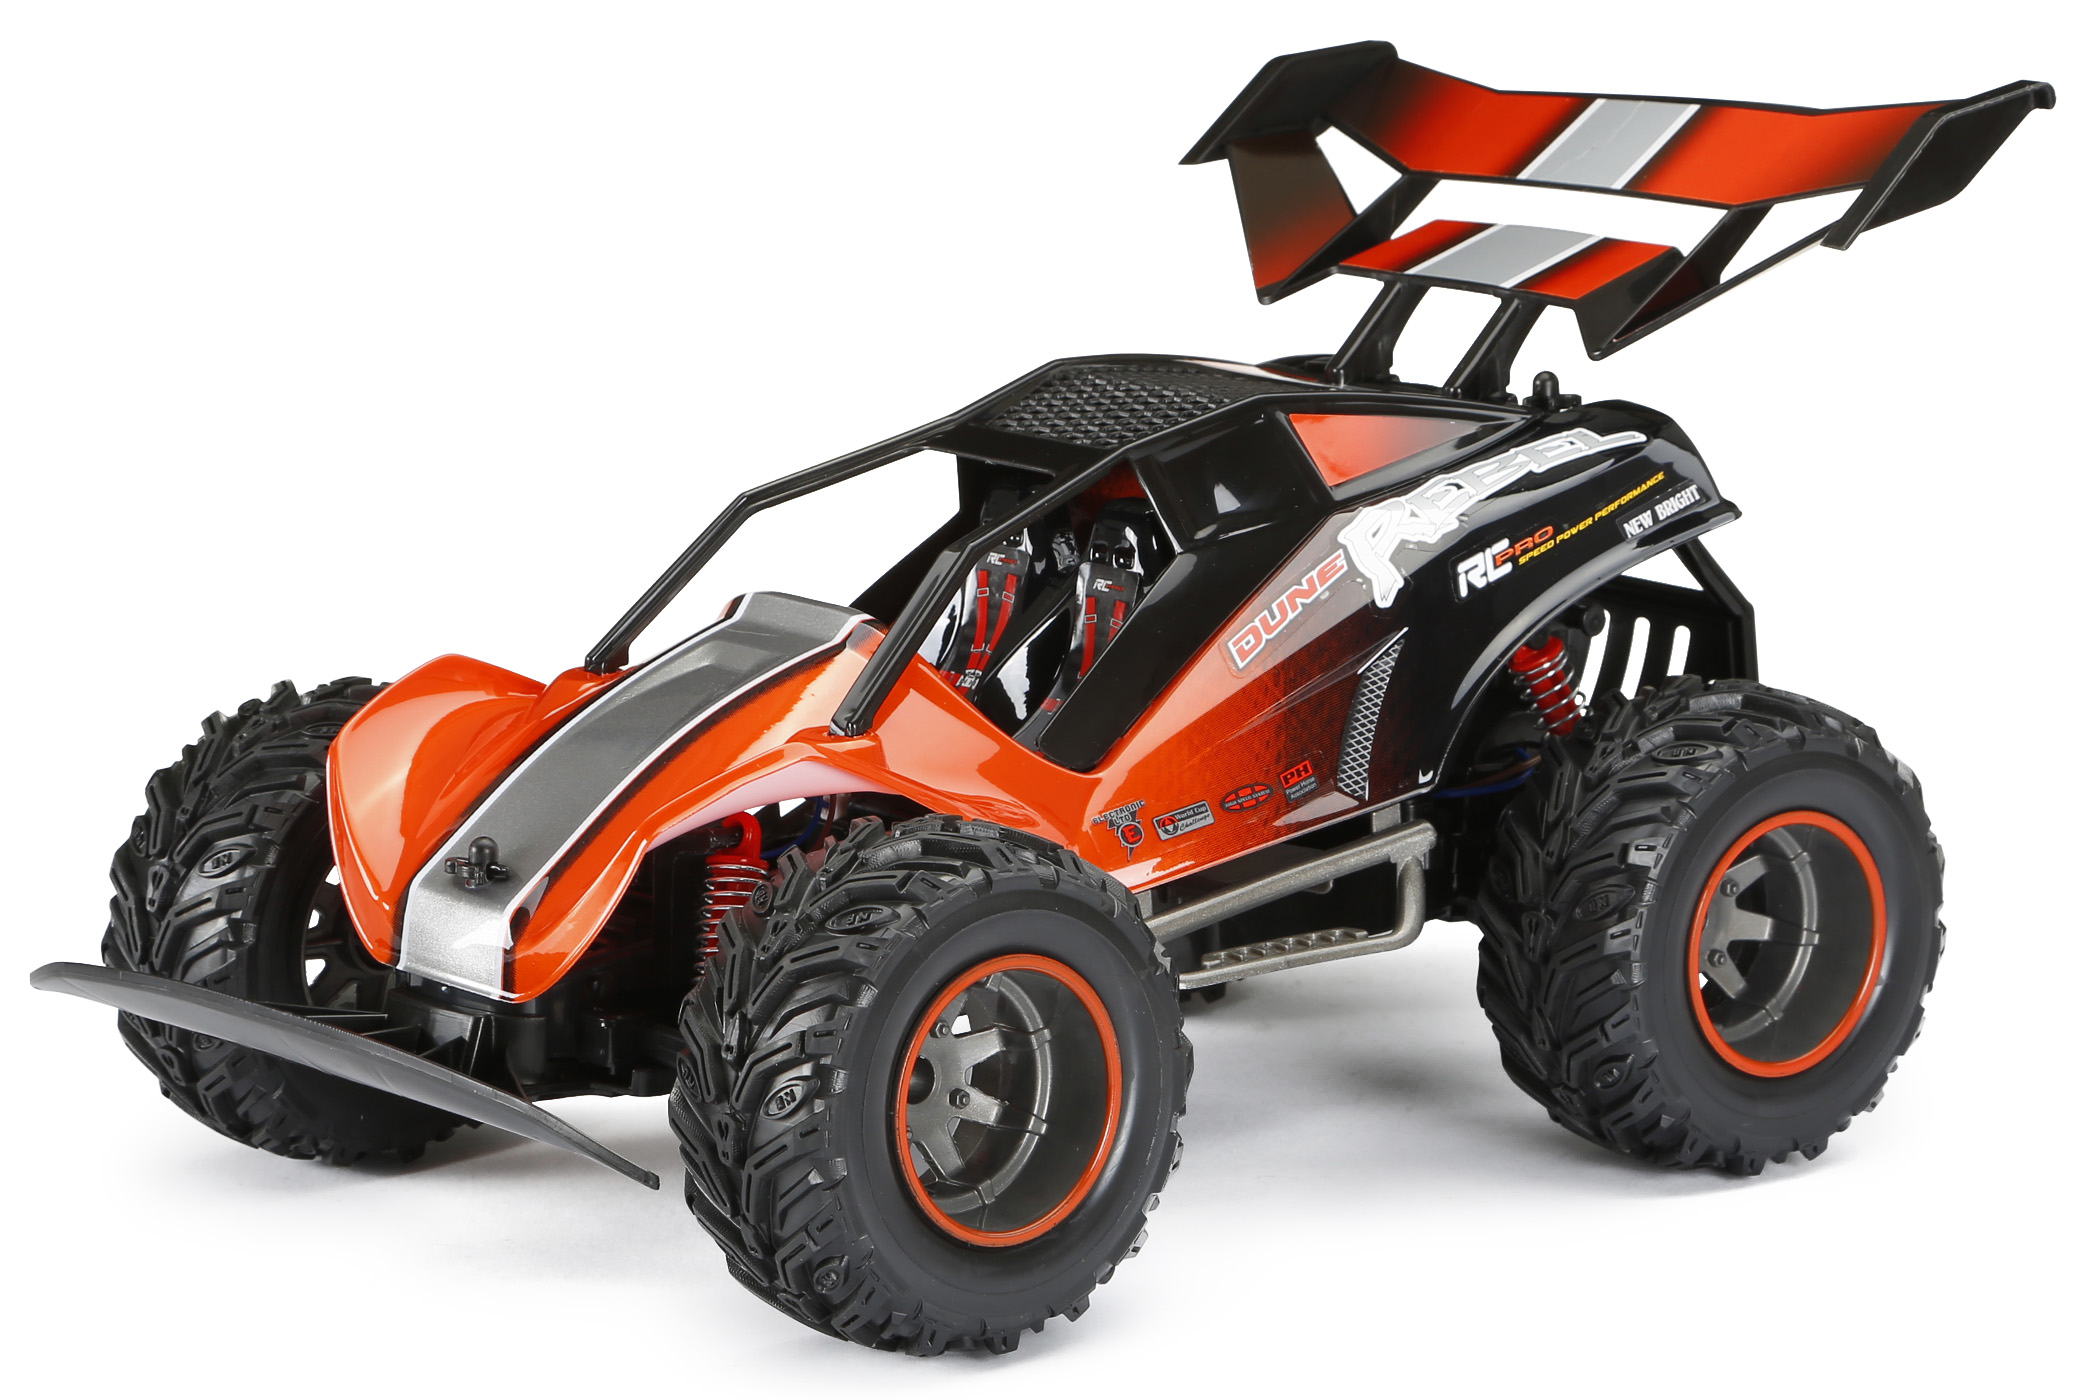 New Bright 1:12 Radio Control 9.6v Pro Dune Rebel by New Bright Industrial Co., Ltd.